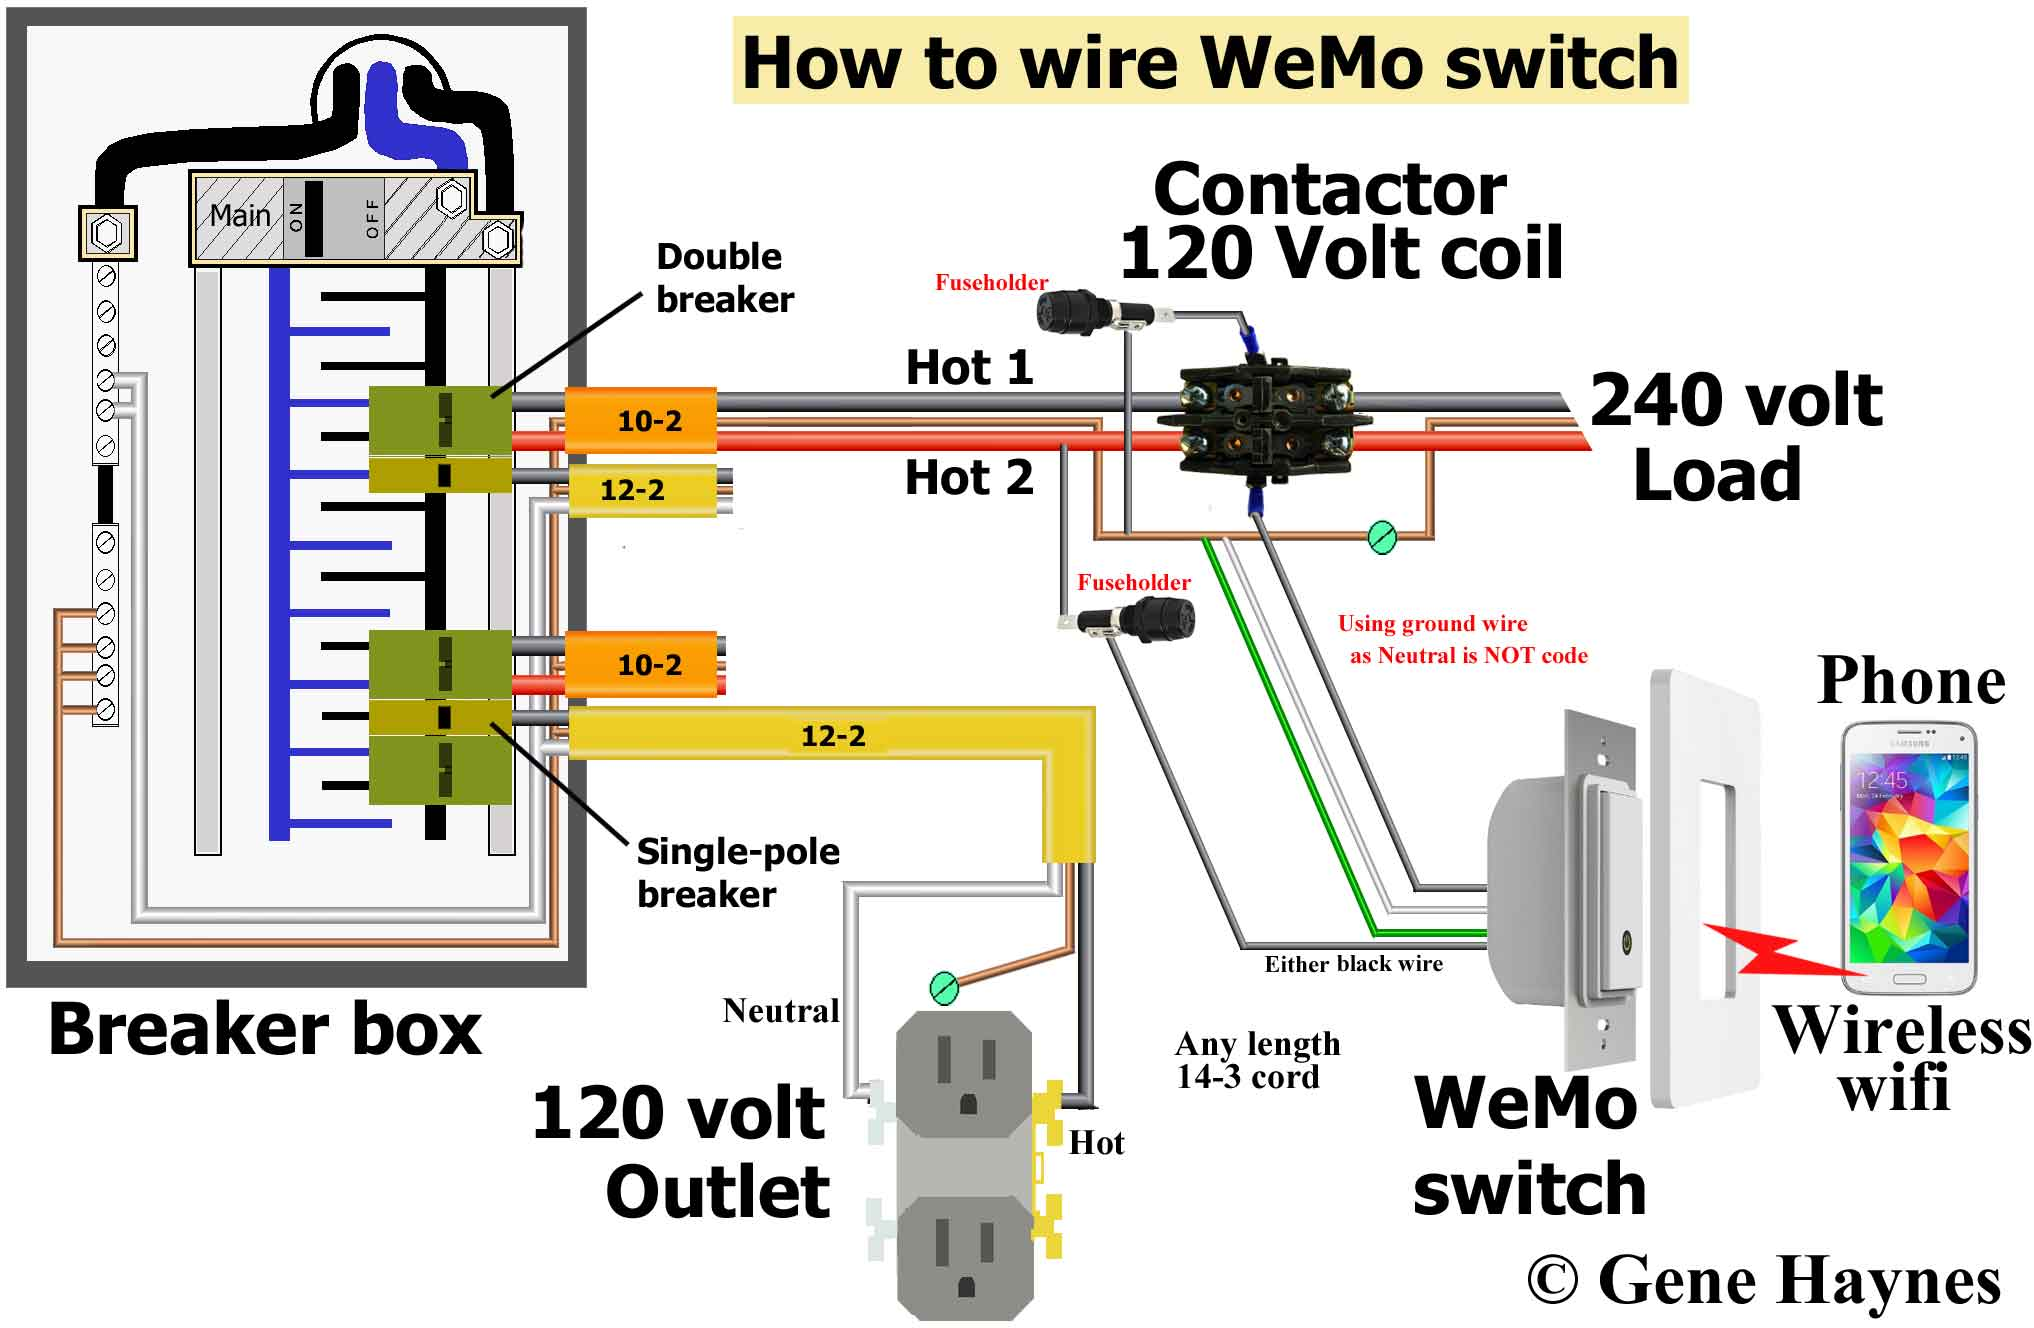 WeMo switch wiring illustration 33 not code control 240 volt with wemo wire diagram for 240 volt wall heater at bakdesigns.co